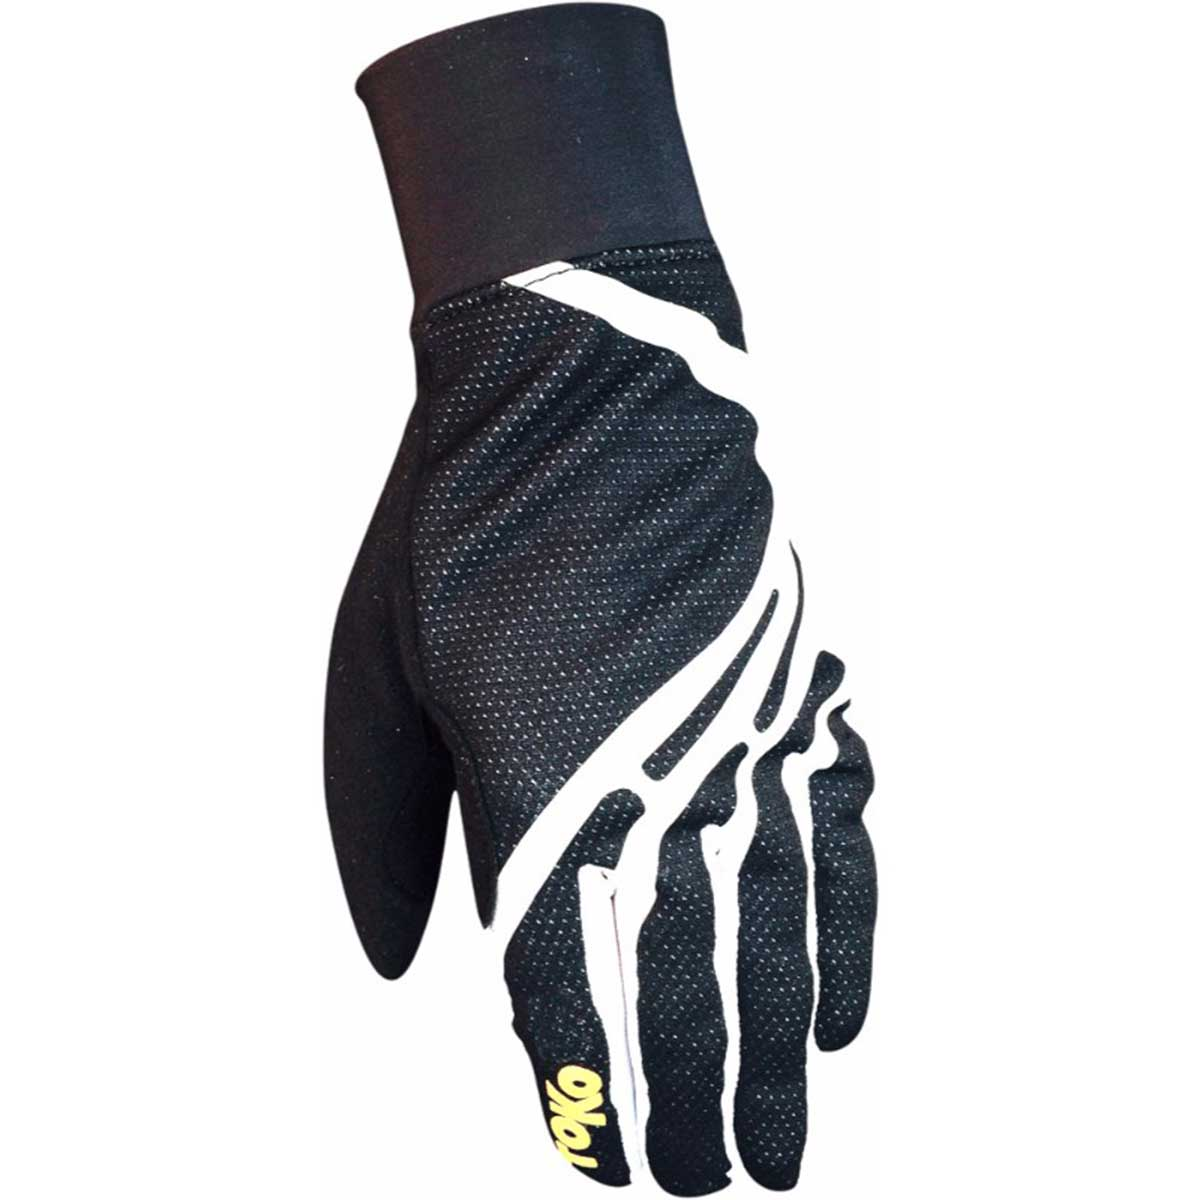 Toko Profi Gloves in Black